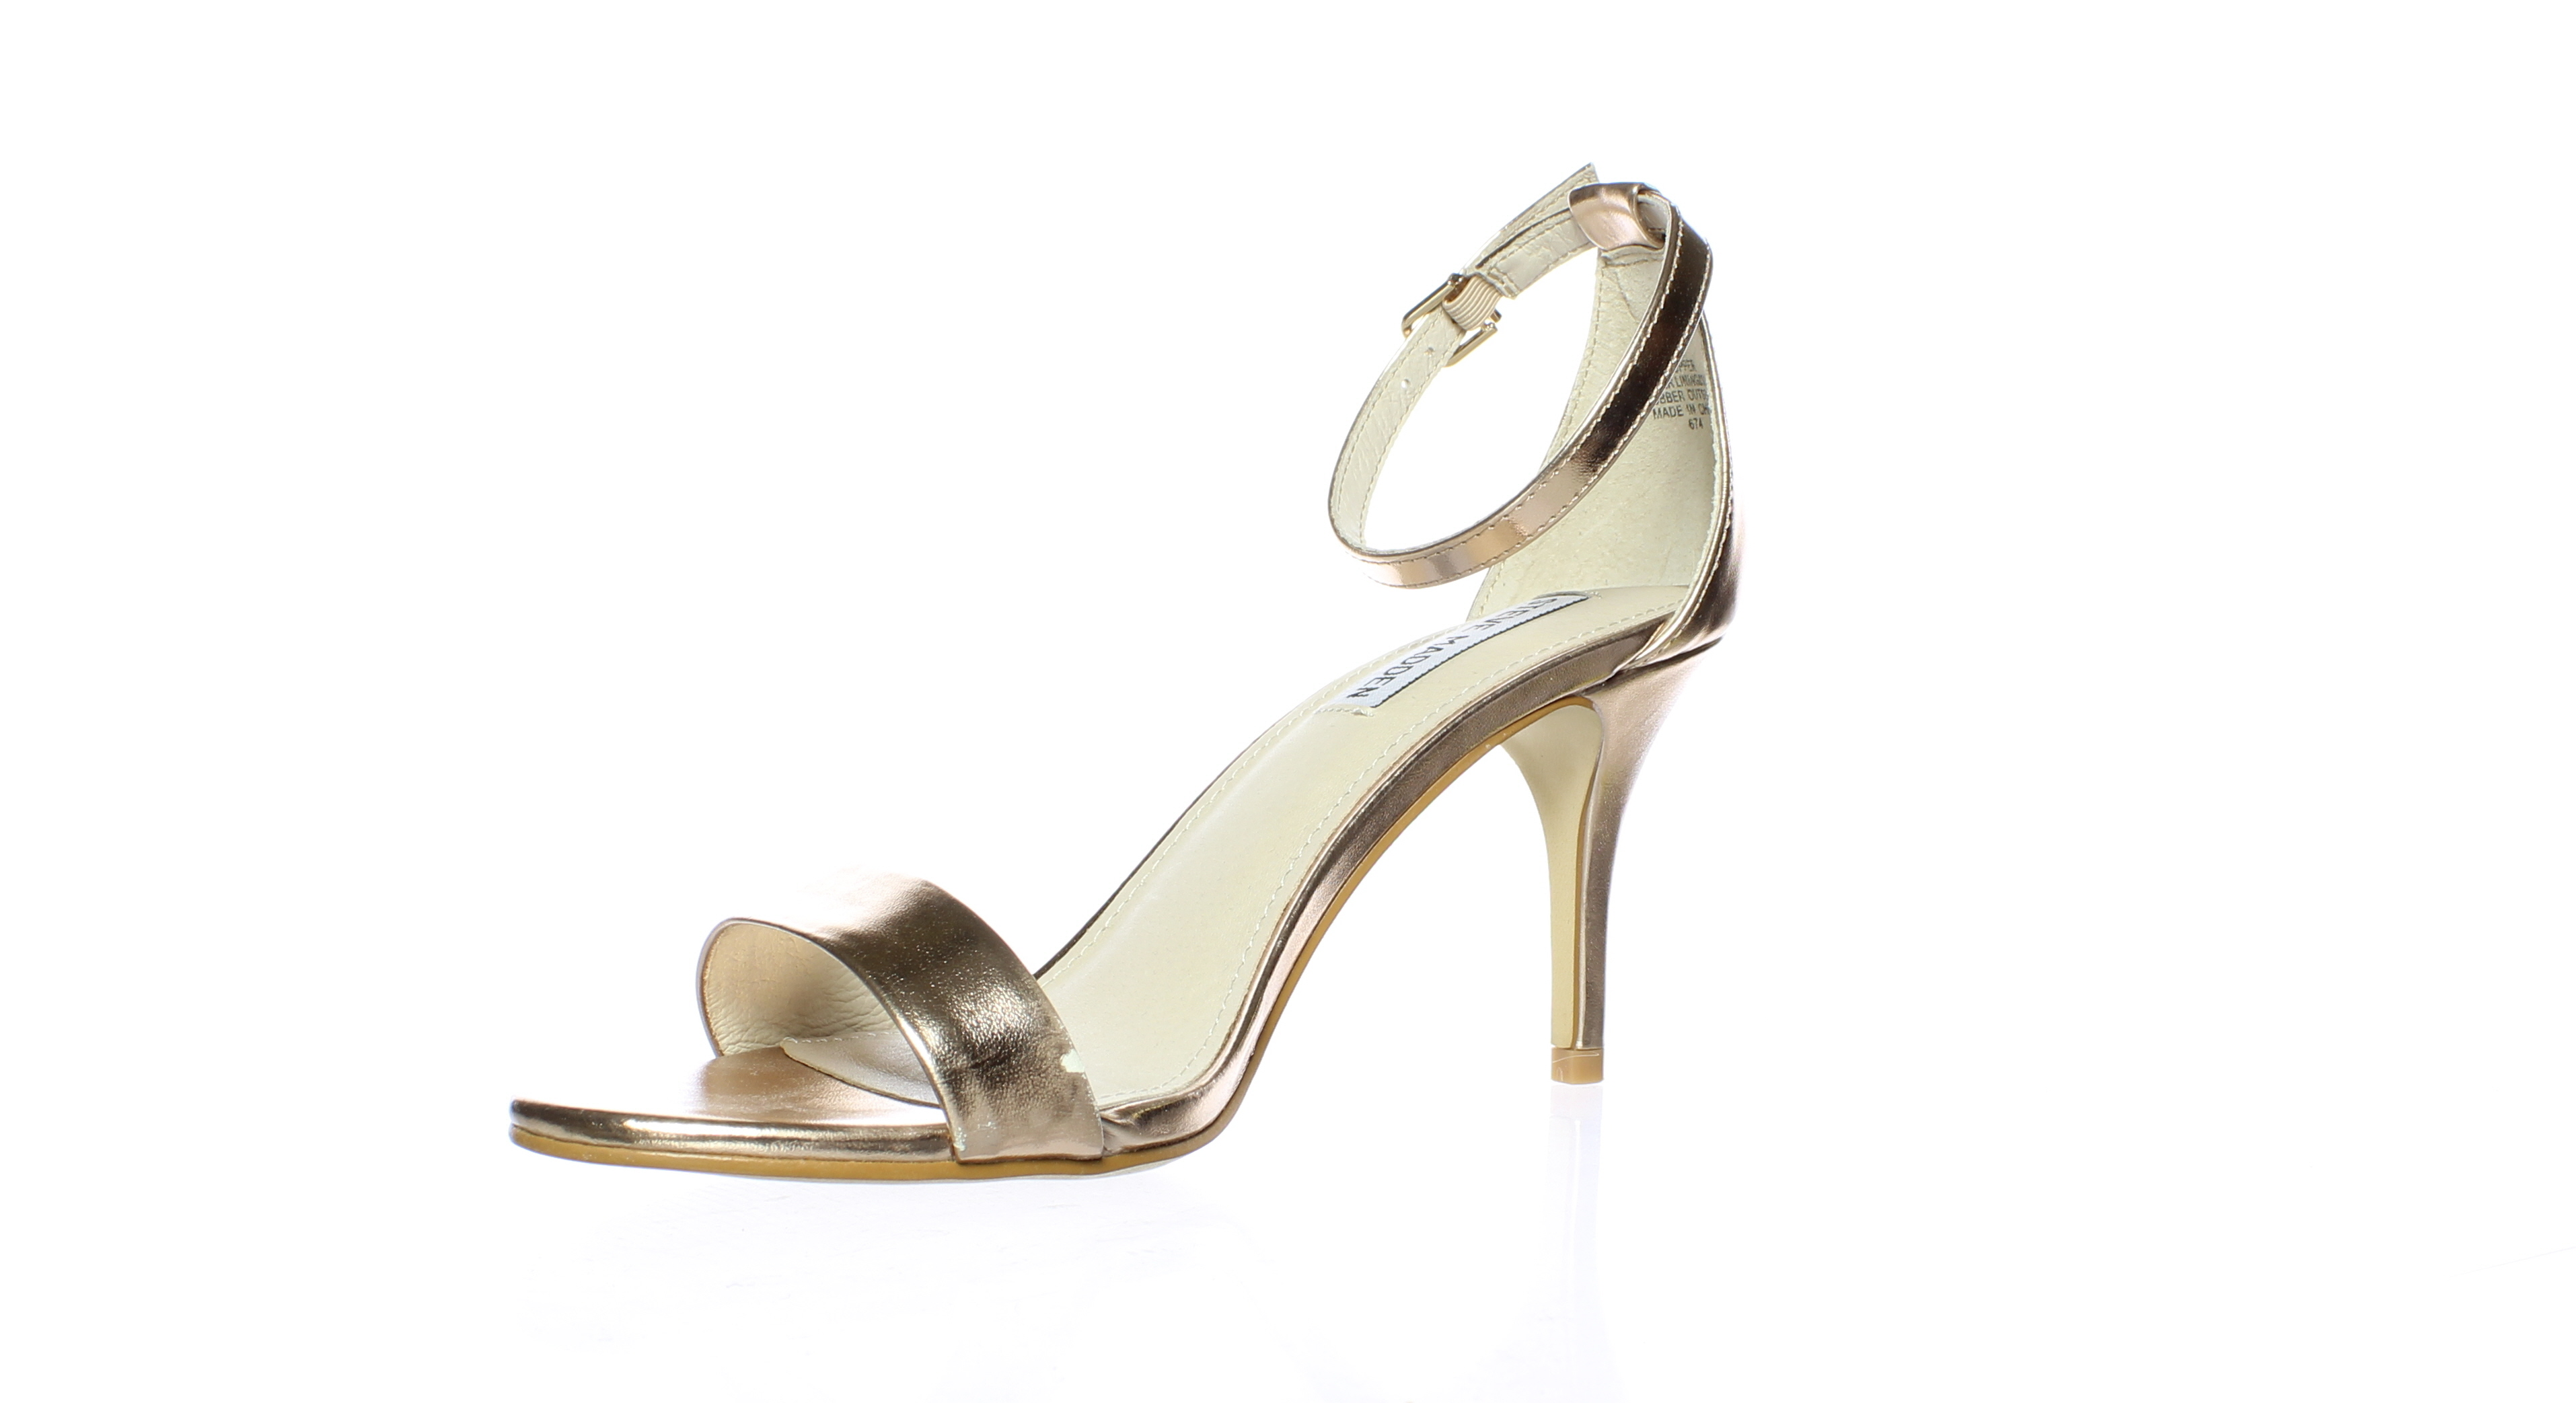 ccca0edc588 Steve Madden WOMENS Sillly Rose Gold Ankle Strap Heels Size 8.5 (214897)